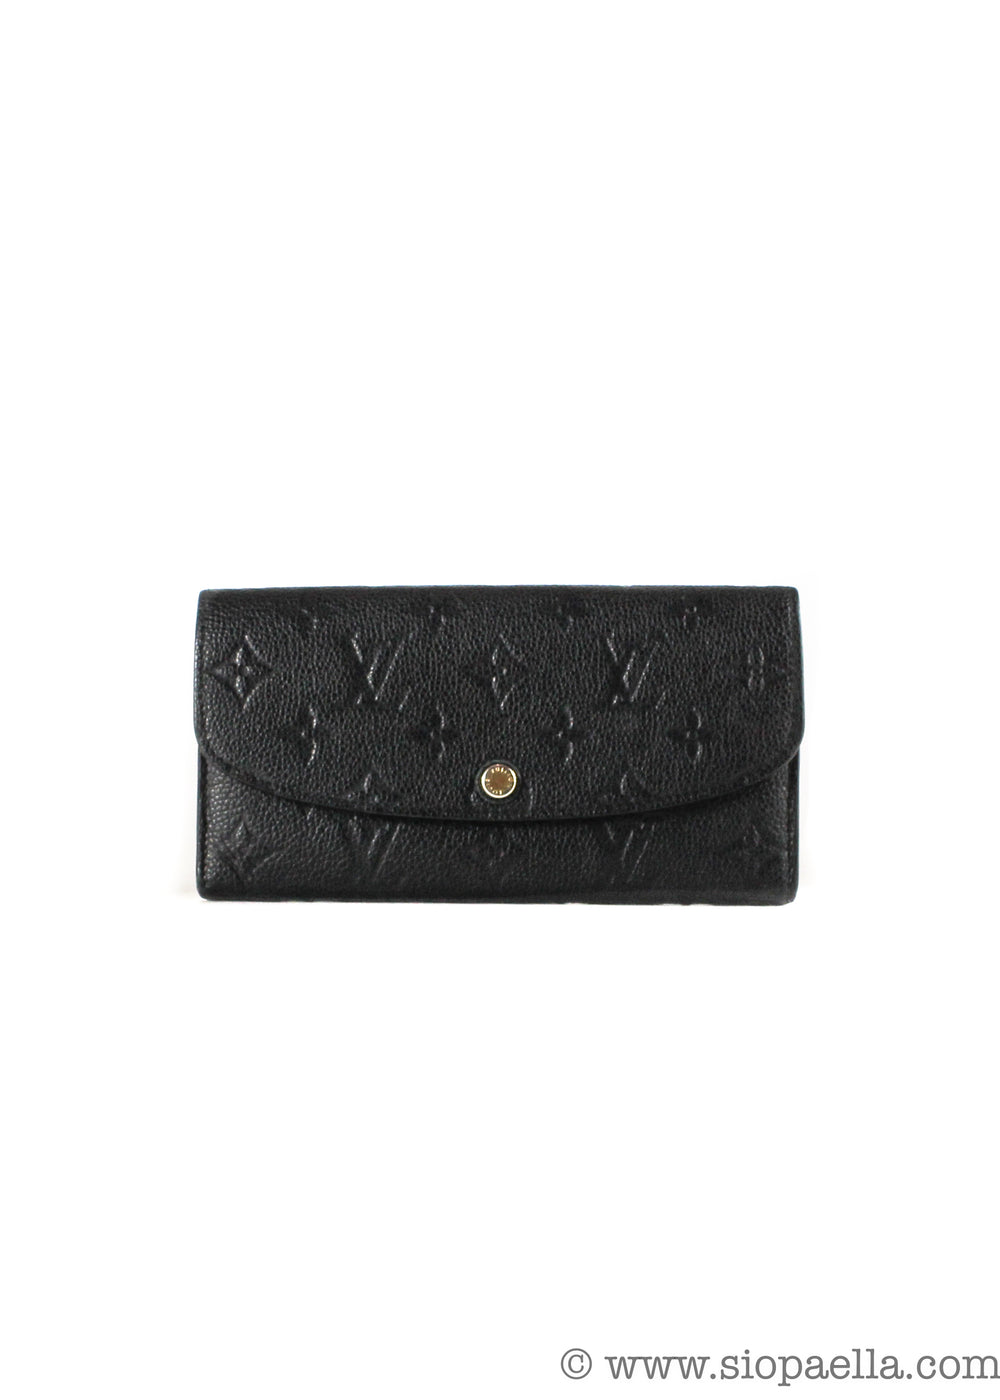 Louis Vuitton Black Leather Monogram